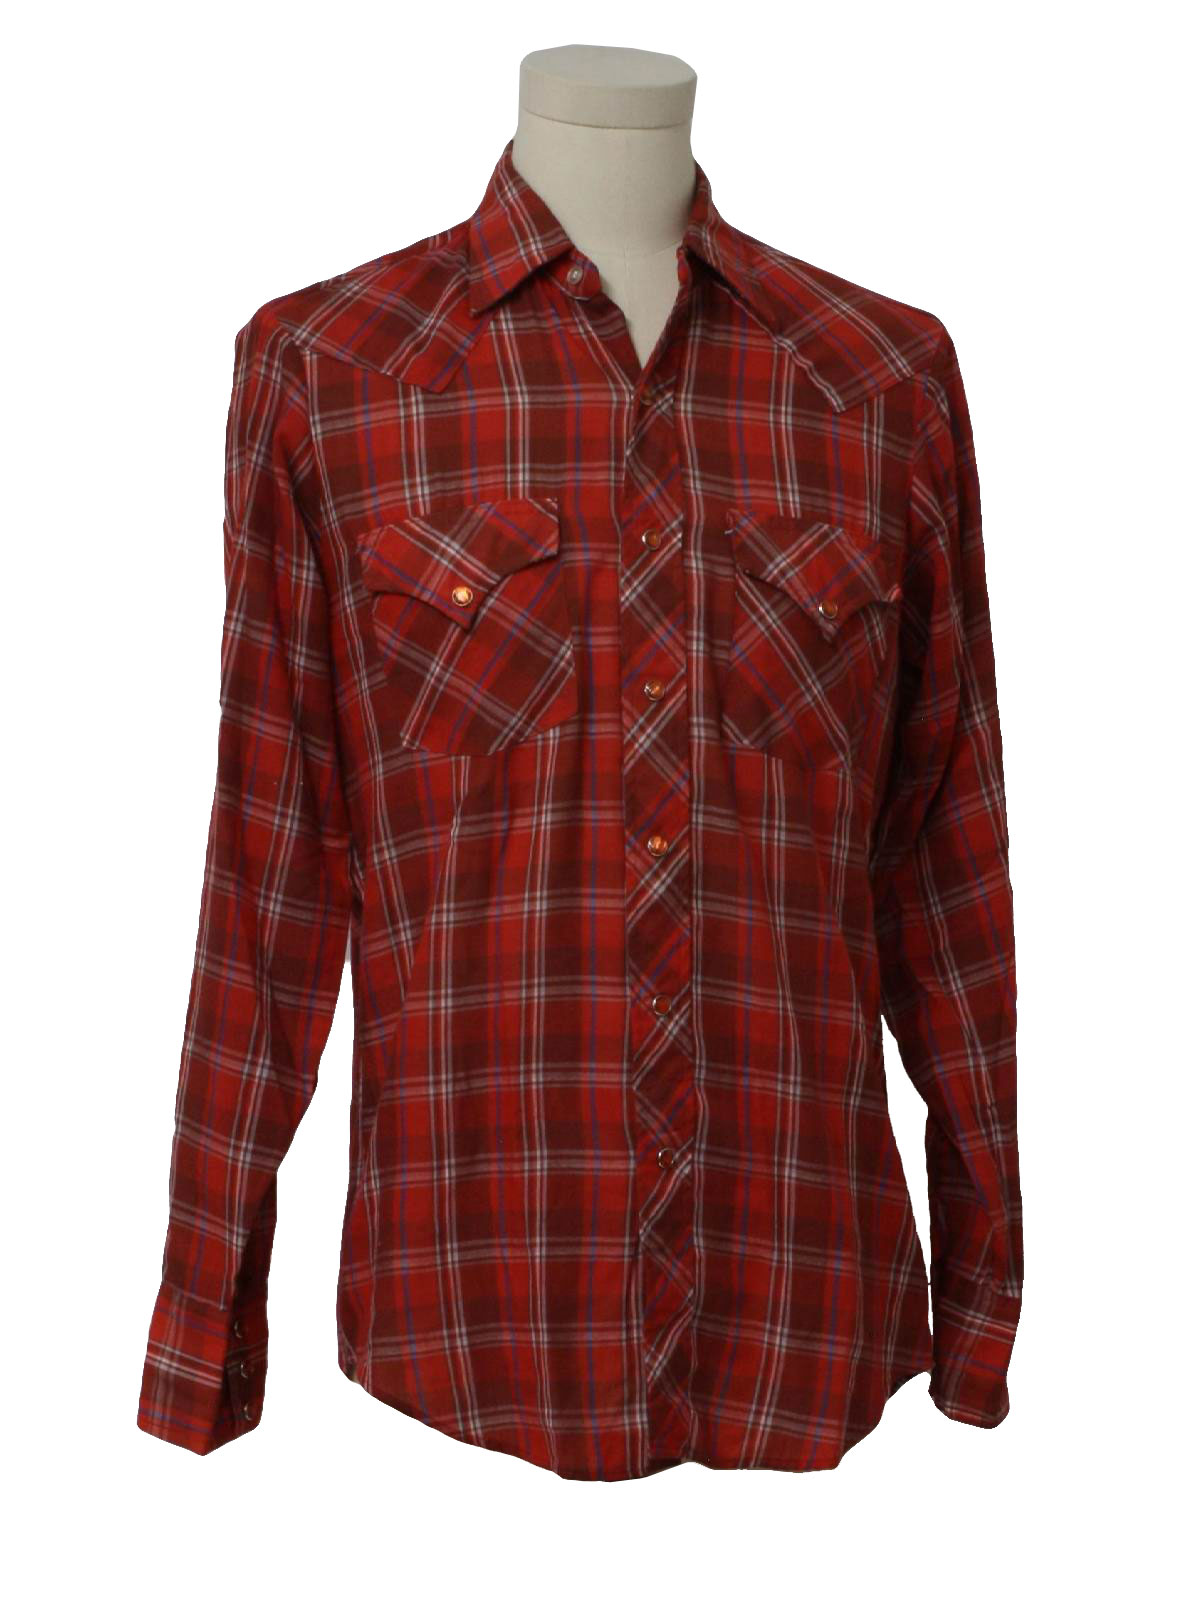 80 39 S Vintage Western Shirt 80s Sears Mens Red With